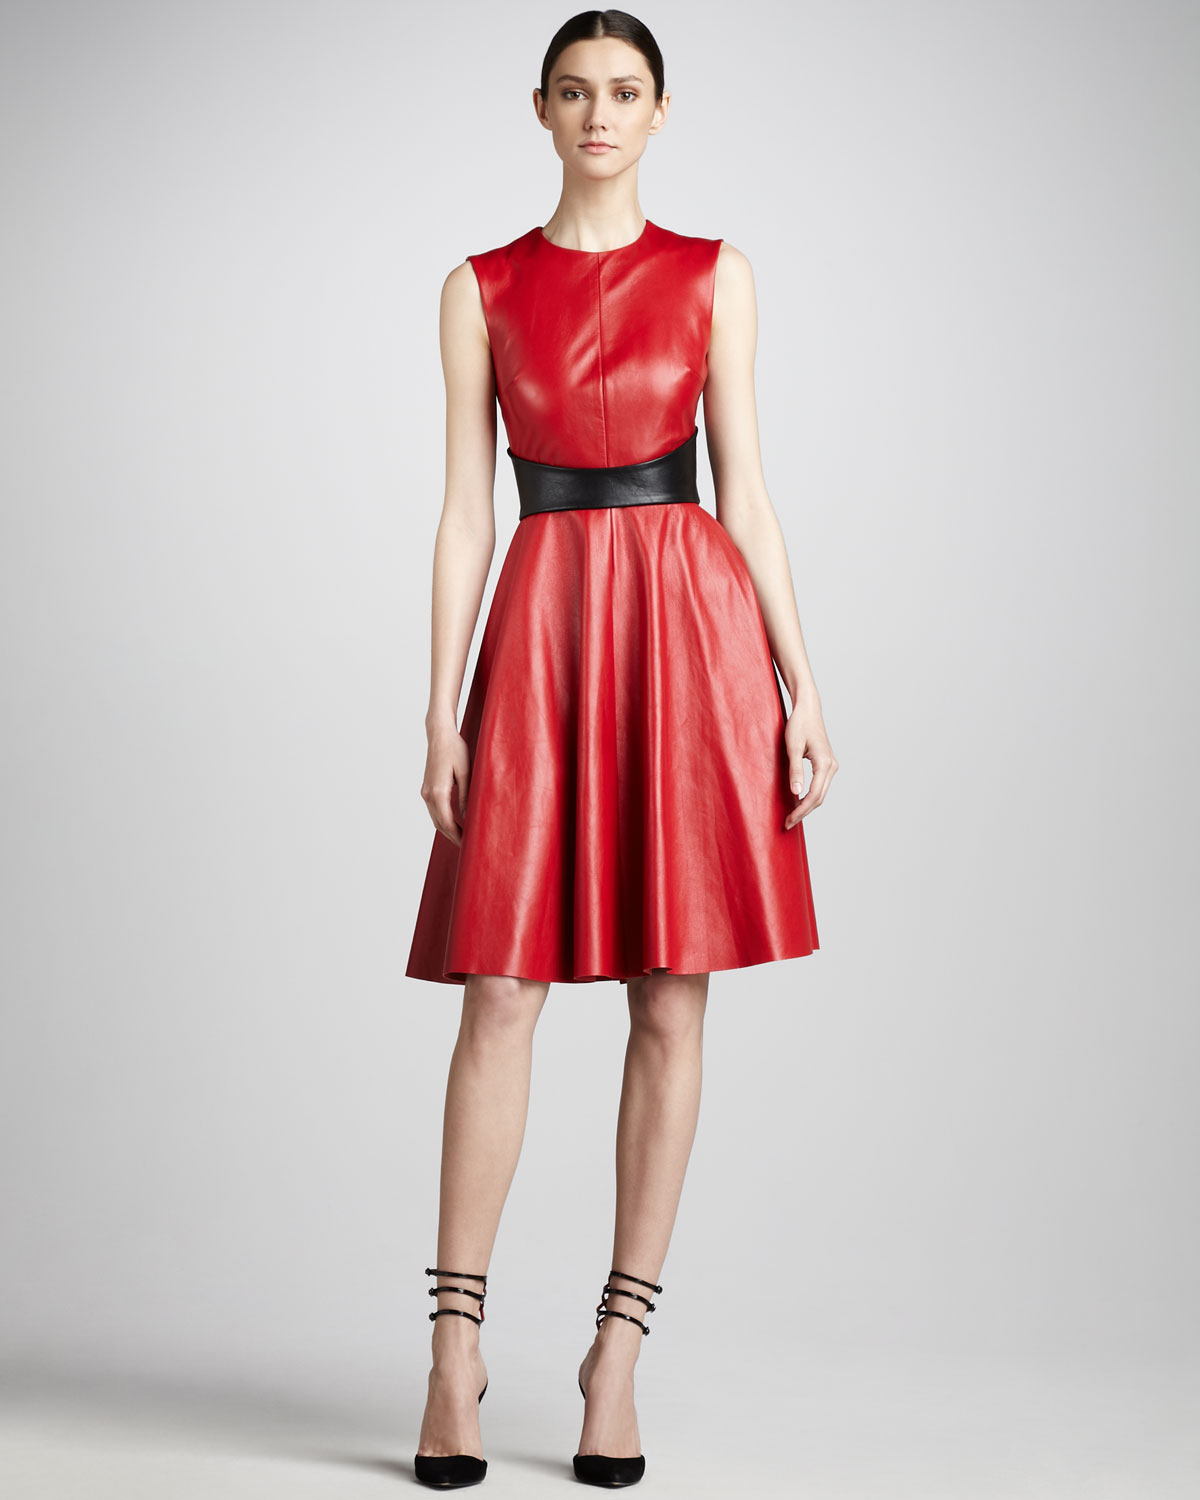 3b0b872525088 Highlighted with a black leather snap belt that flatters the waist, this  dress is striking. photo credit: polyvore.com. Alexander McQueen ...